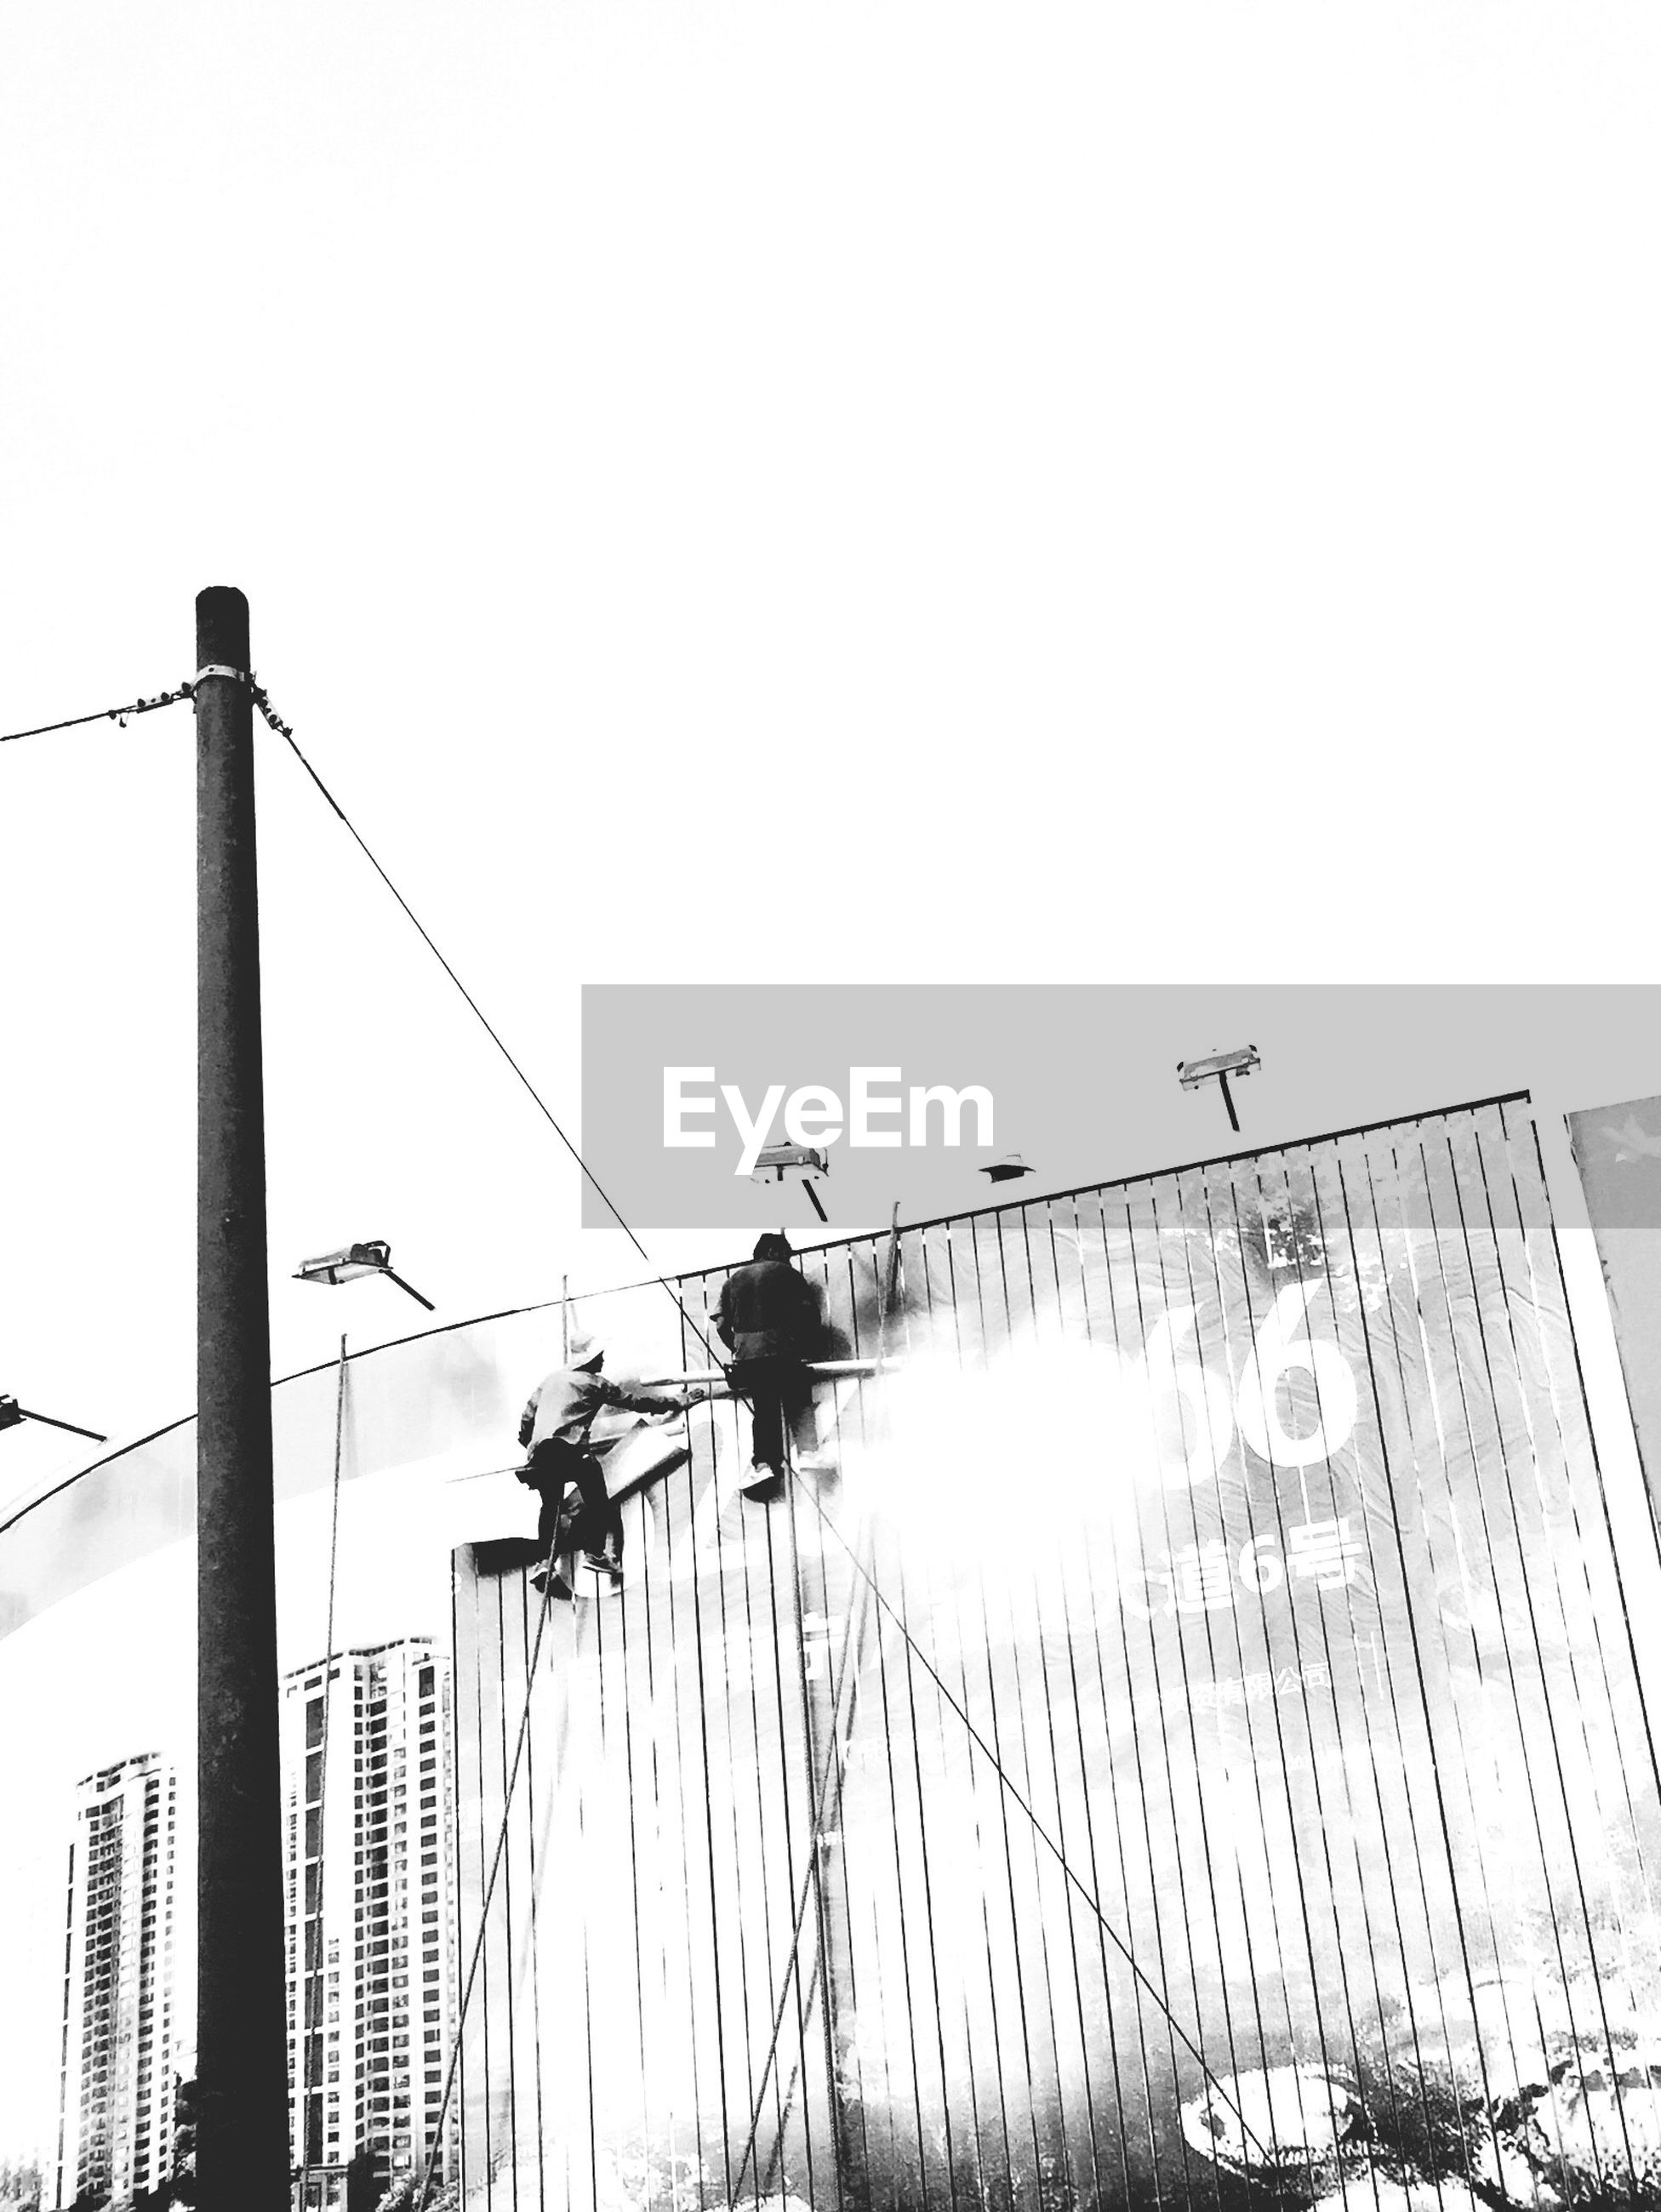 low angle view, building exterior, clear sky, built structure, architecture, street light, silhouette, copy space, building, sky, city, power line, crane - construction machinery, construction site, outdoors, lighting equipment, cable, development, no people, electricity